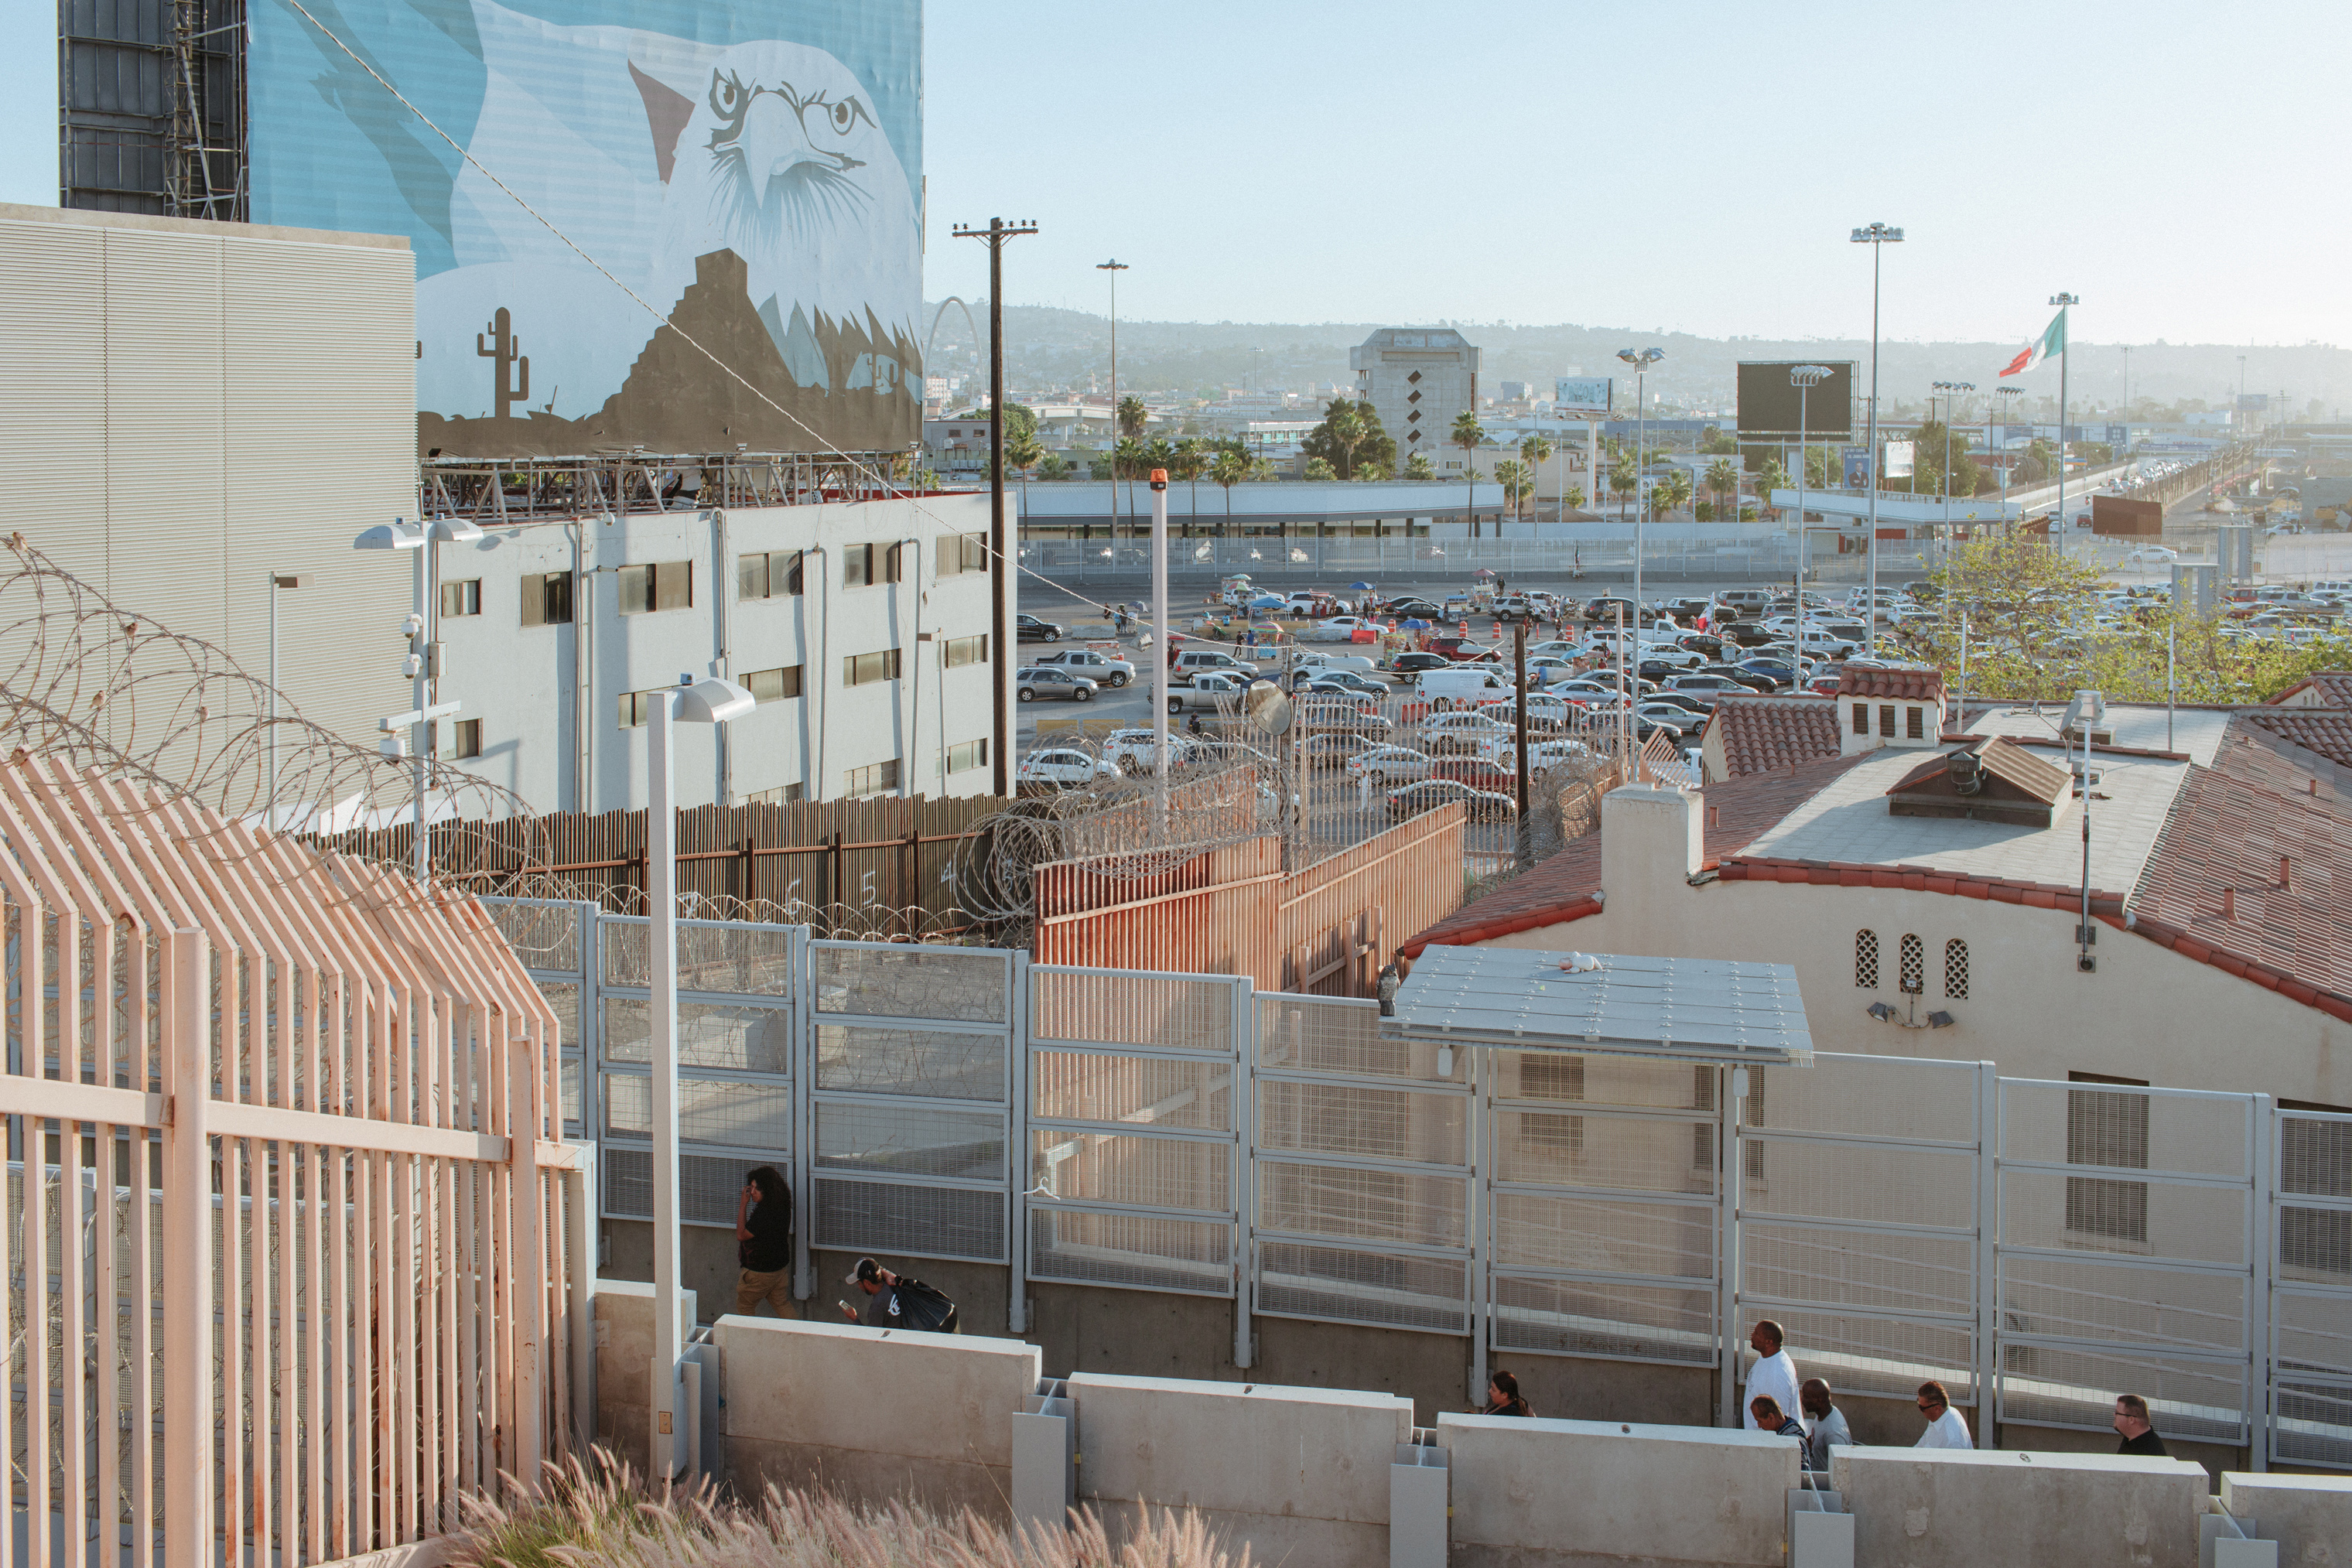 The San Ysidro Border is the largest crossing between San Diego and Tijuana. View from San Deigo, Calif.